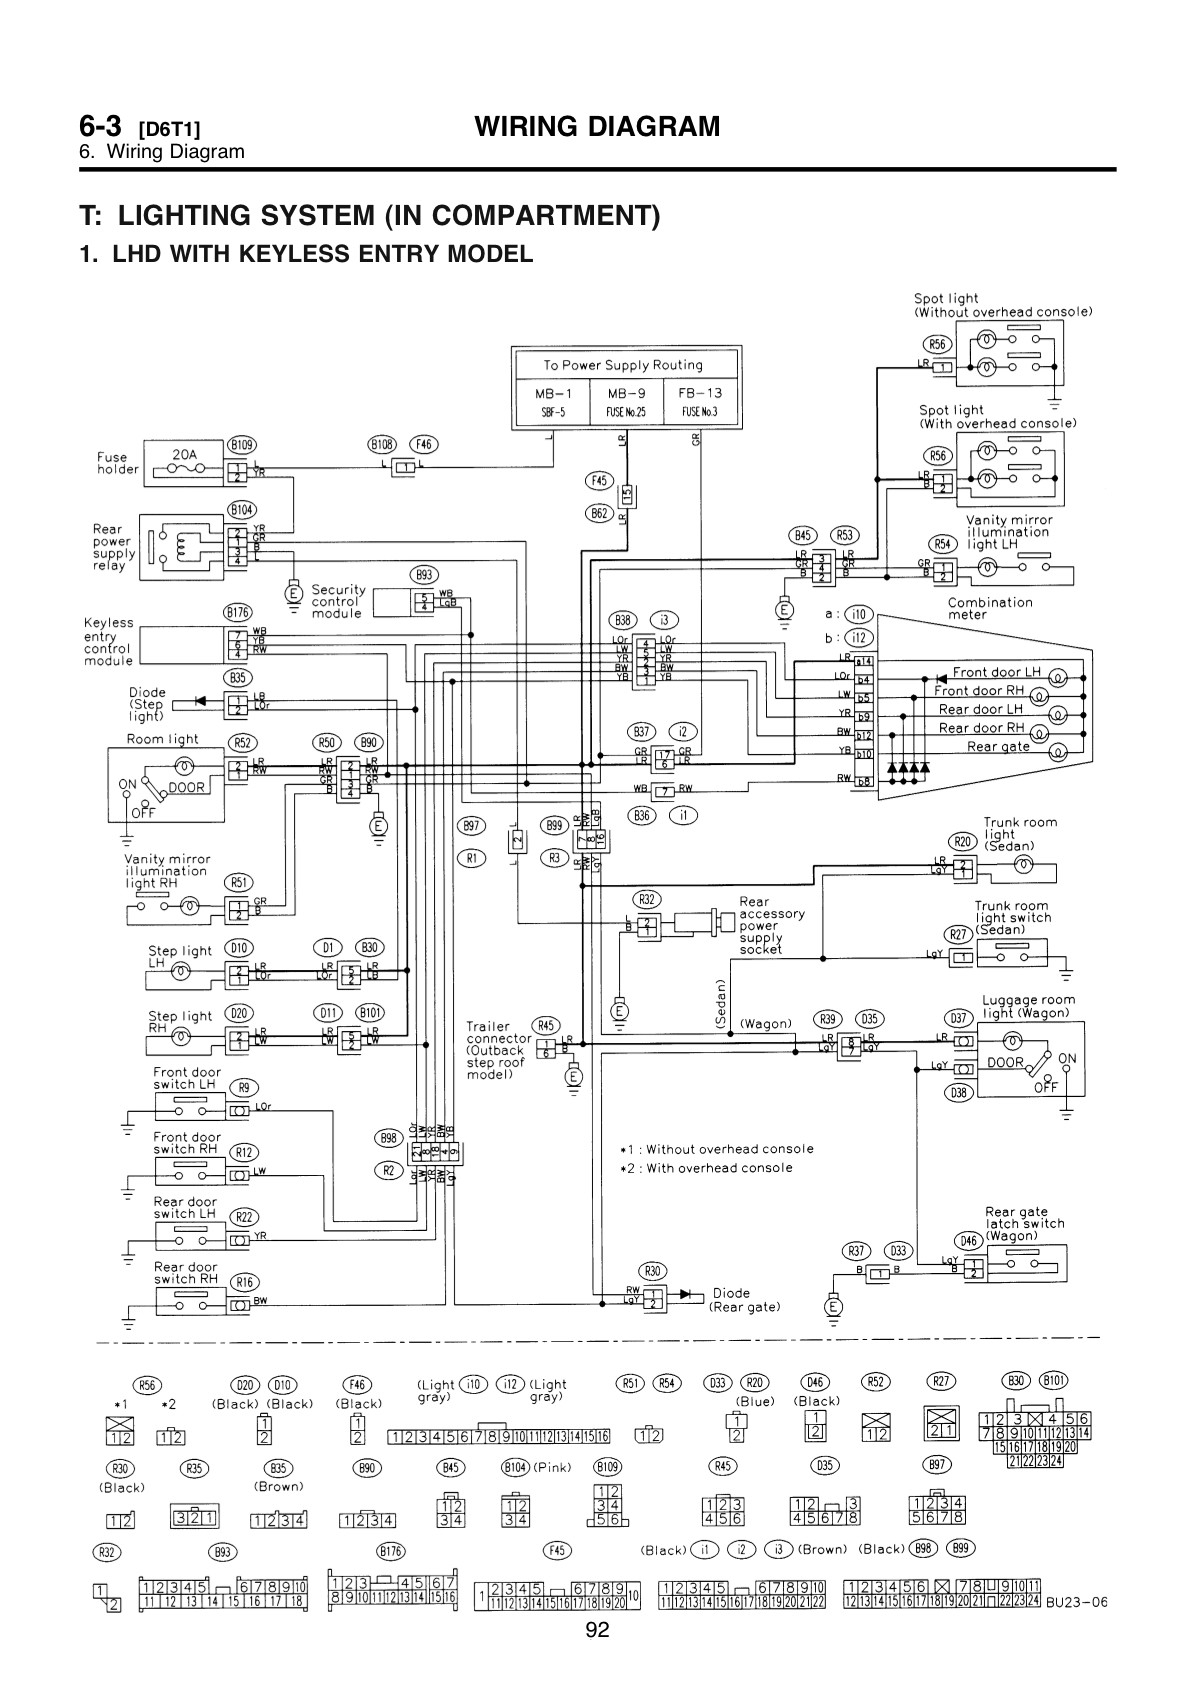 1997 Subaru Legacy Stereo Wiring Diagram Free Harness For Car Radio